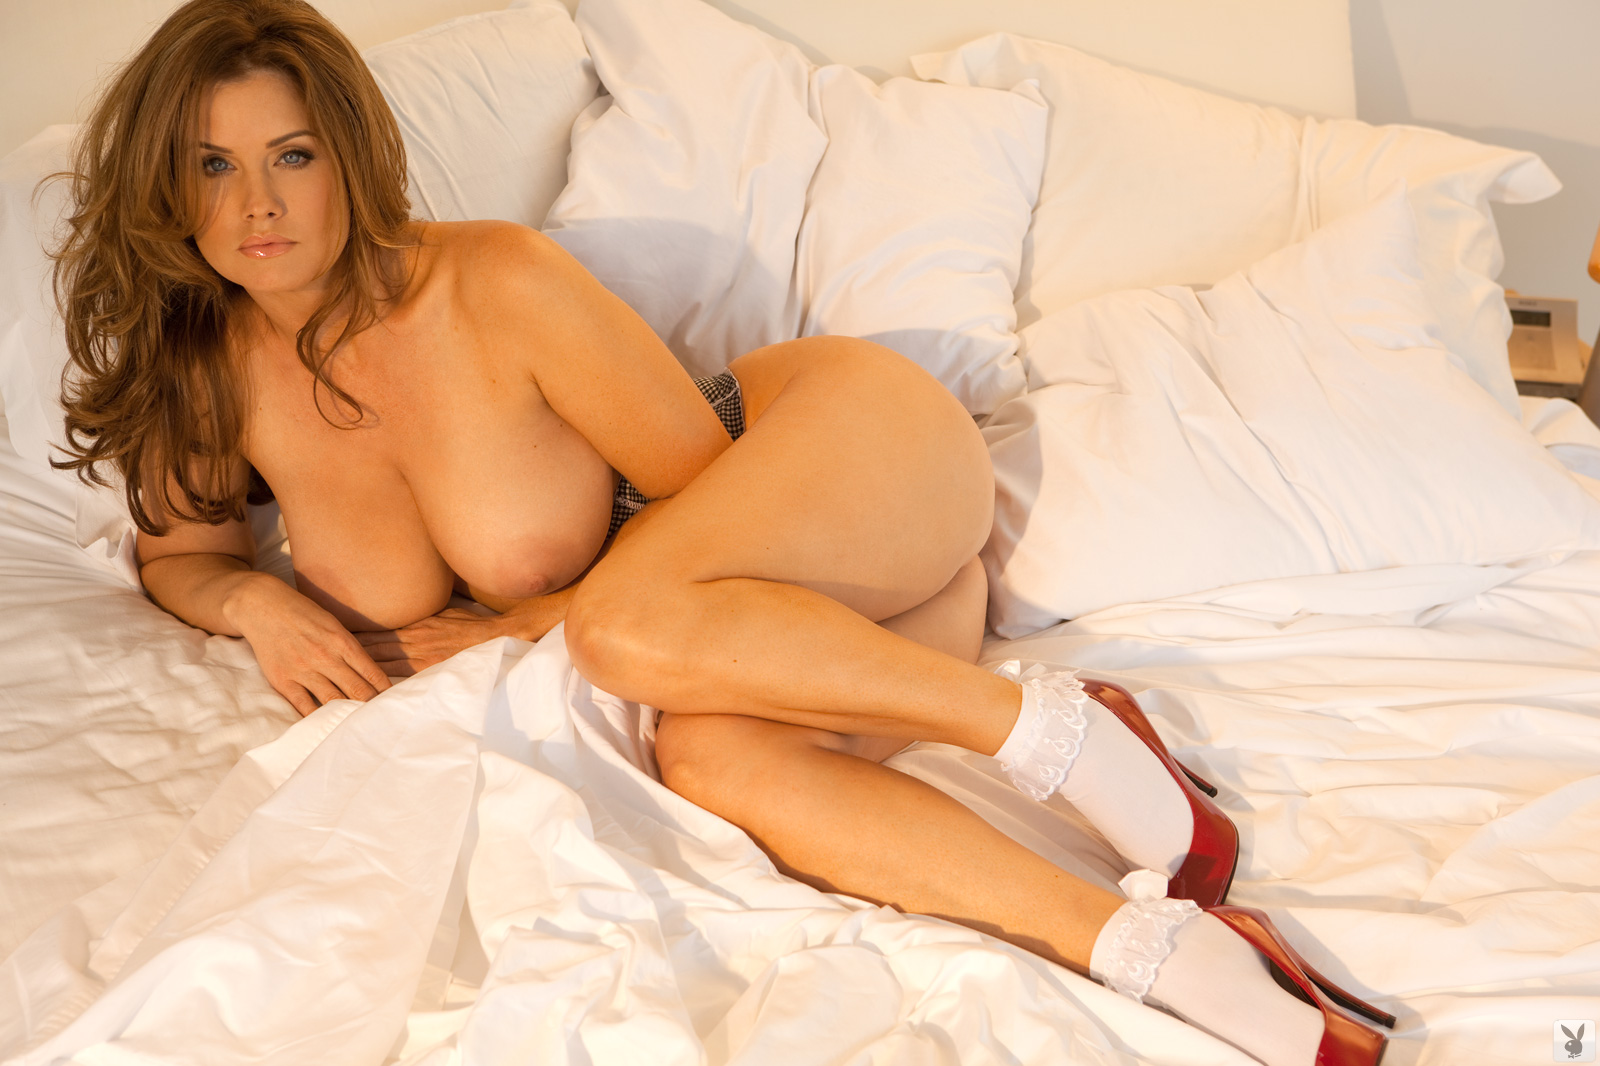 Carrie stevens nude in whos your daddy scandalplanetcom 4